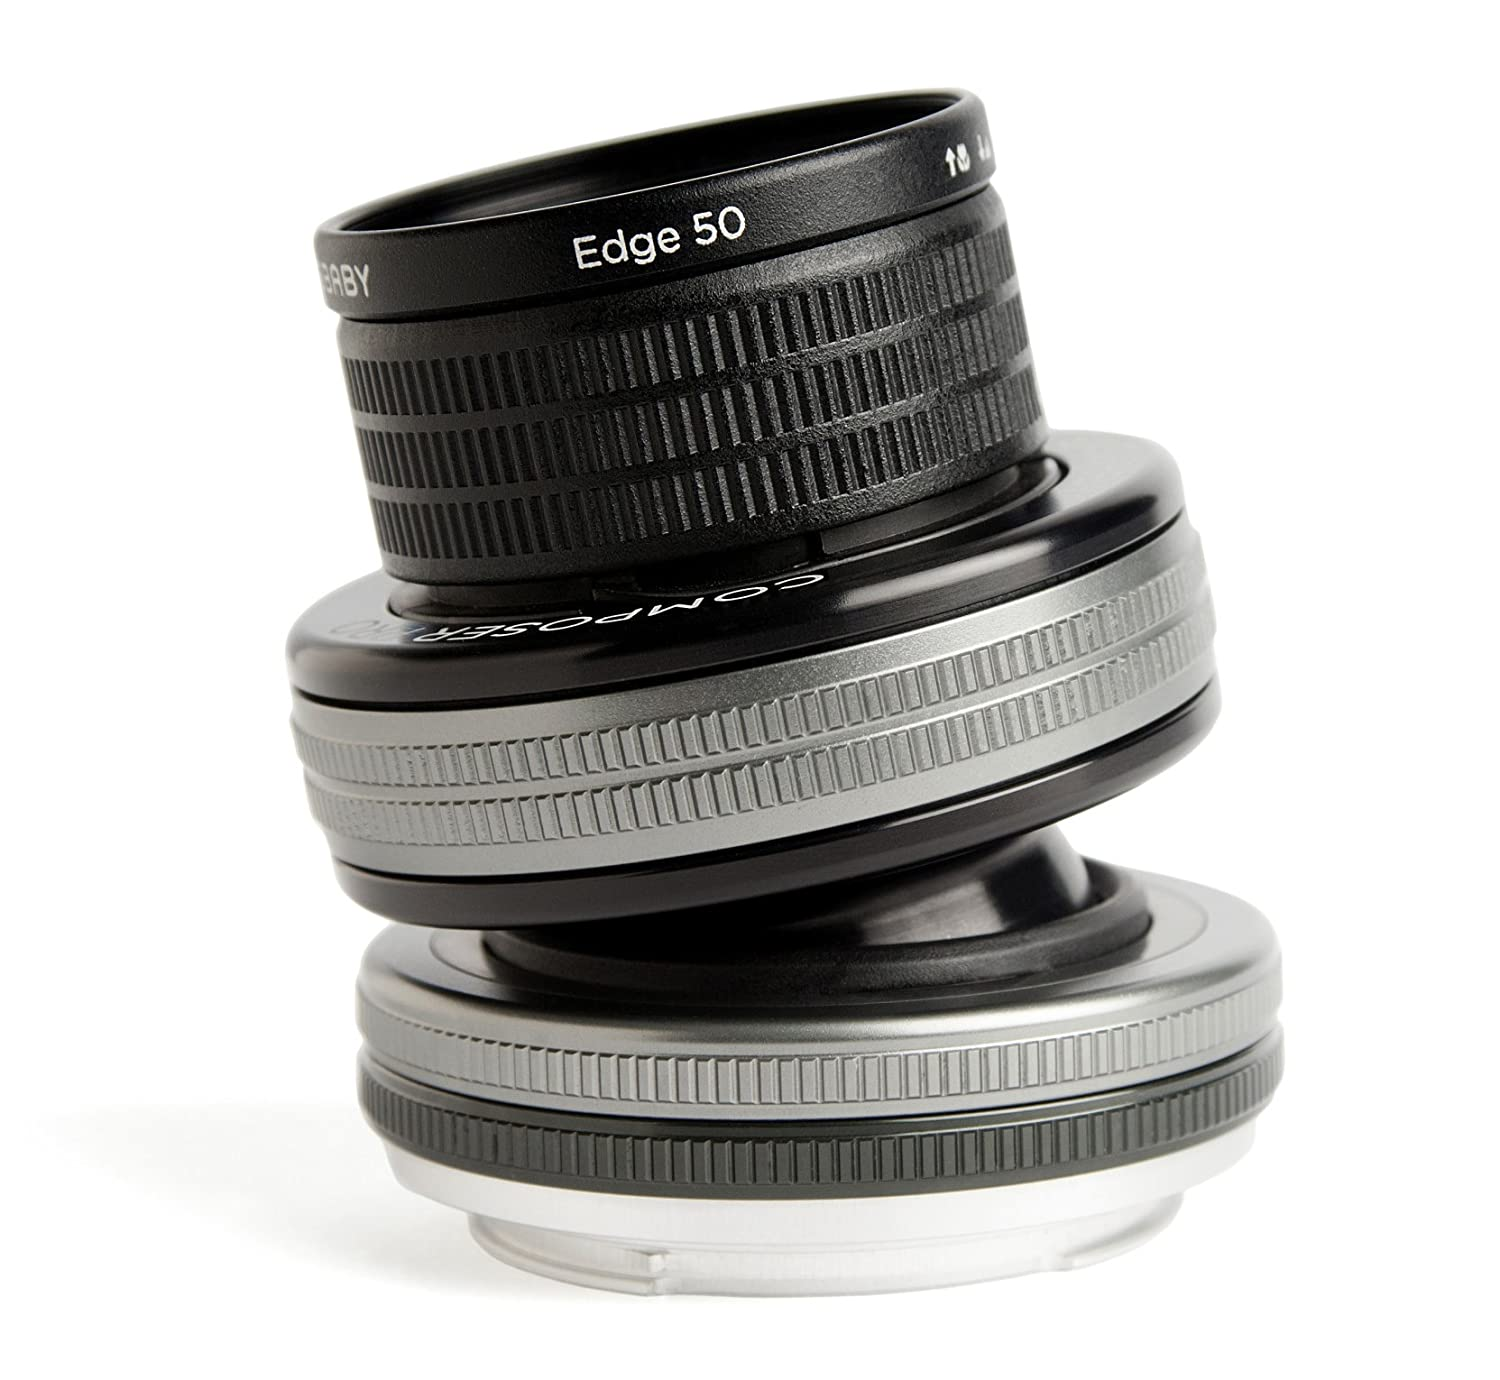 Lensbaby Composer Pro II with Edge 50 Optic for Sony Alpha E/ NEX